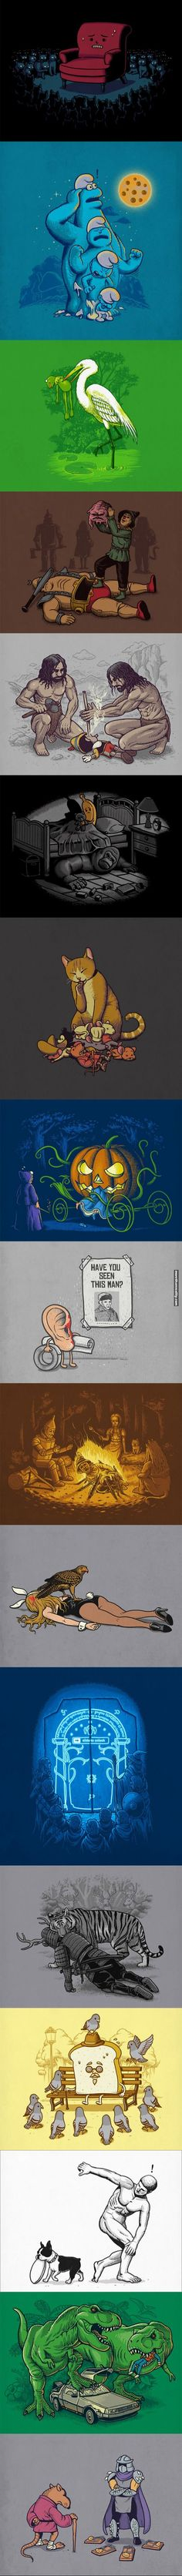 Creative and funny drawings